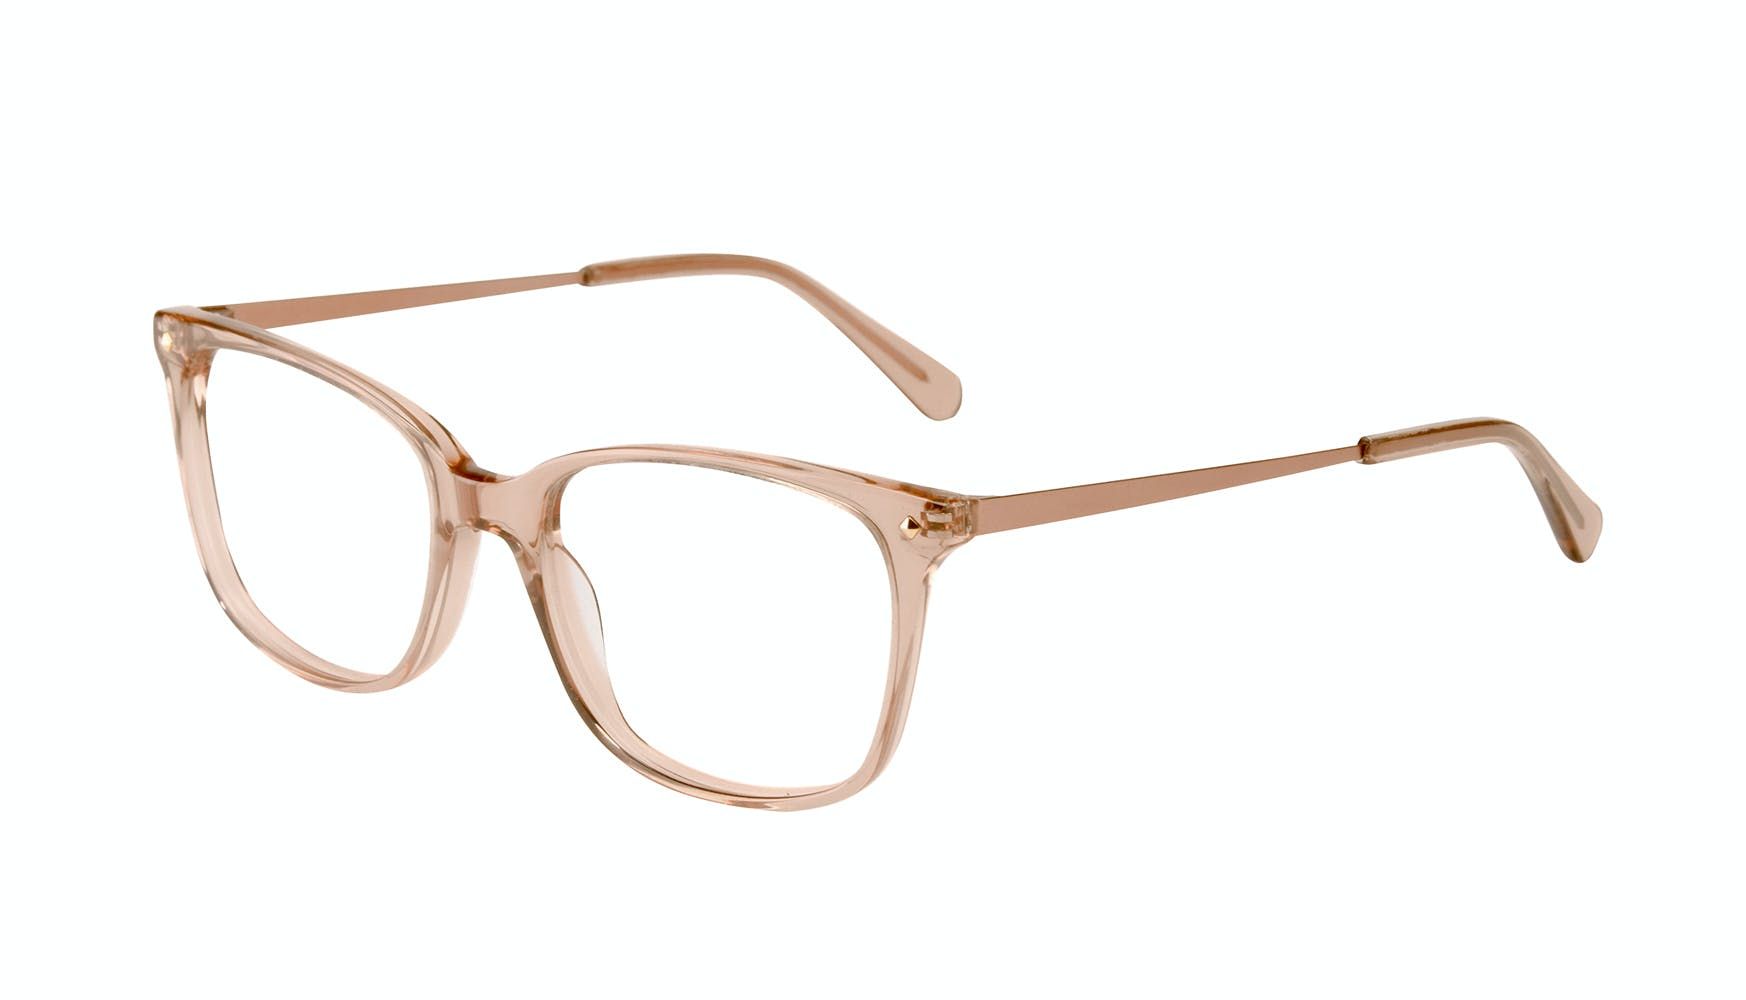 Affordable Fashion Glasses Rectangle Square Eyeglasses Women Refine Toffee Tilt